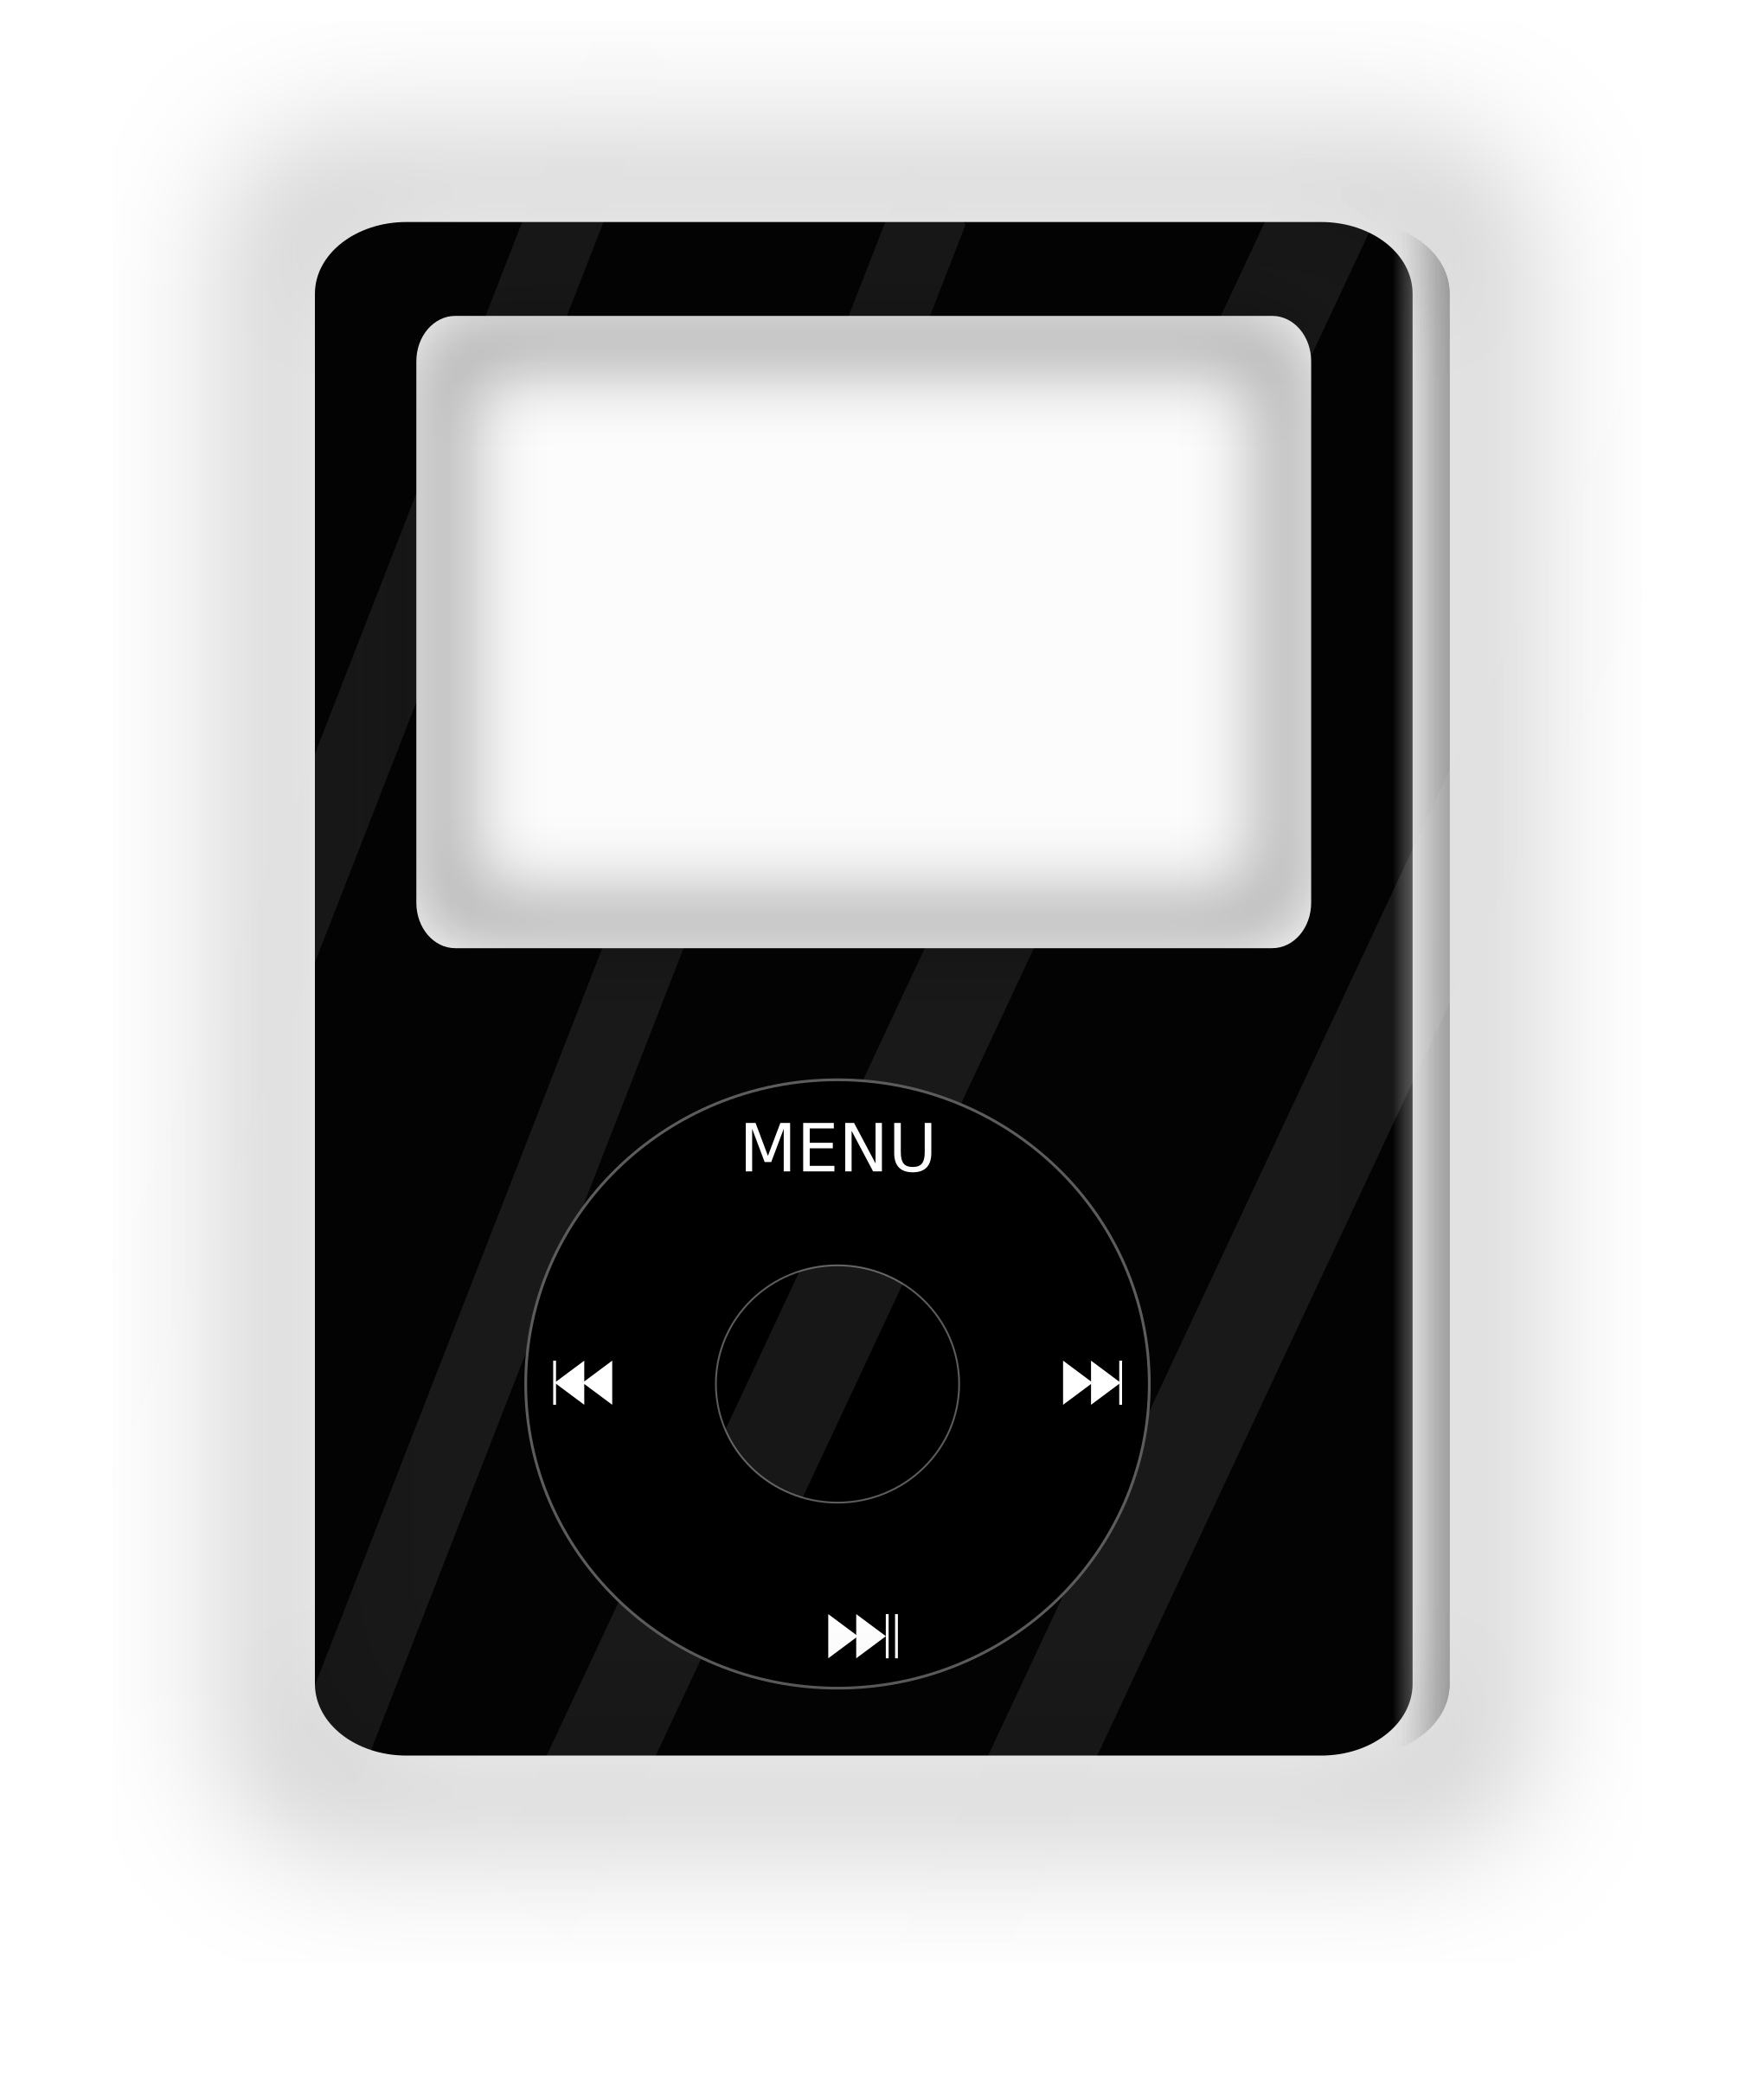 Big image png. Music clipart music player